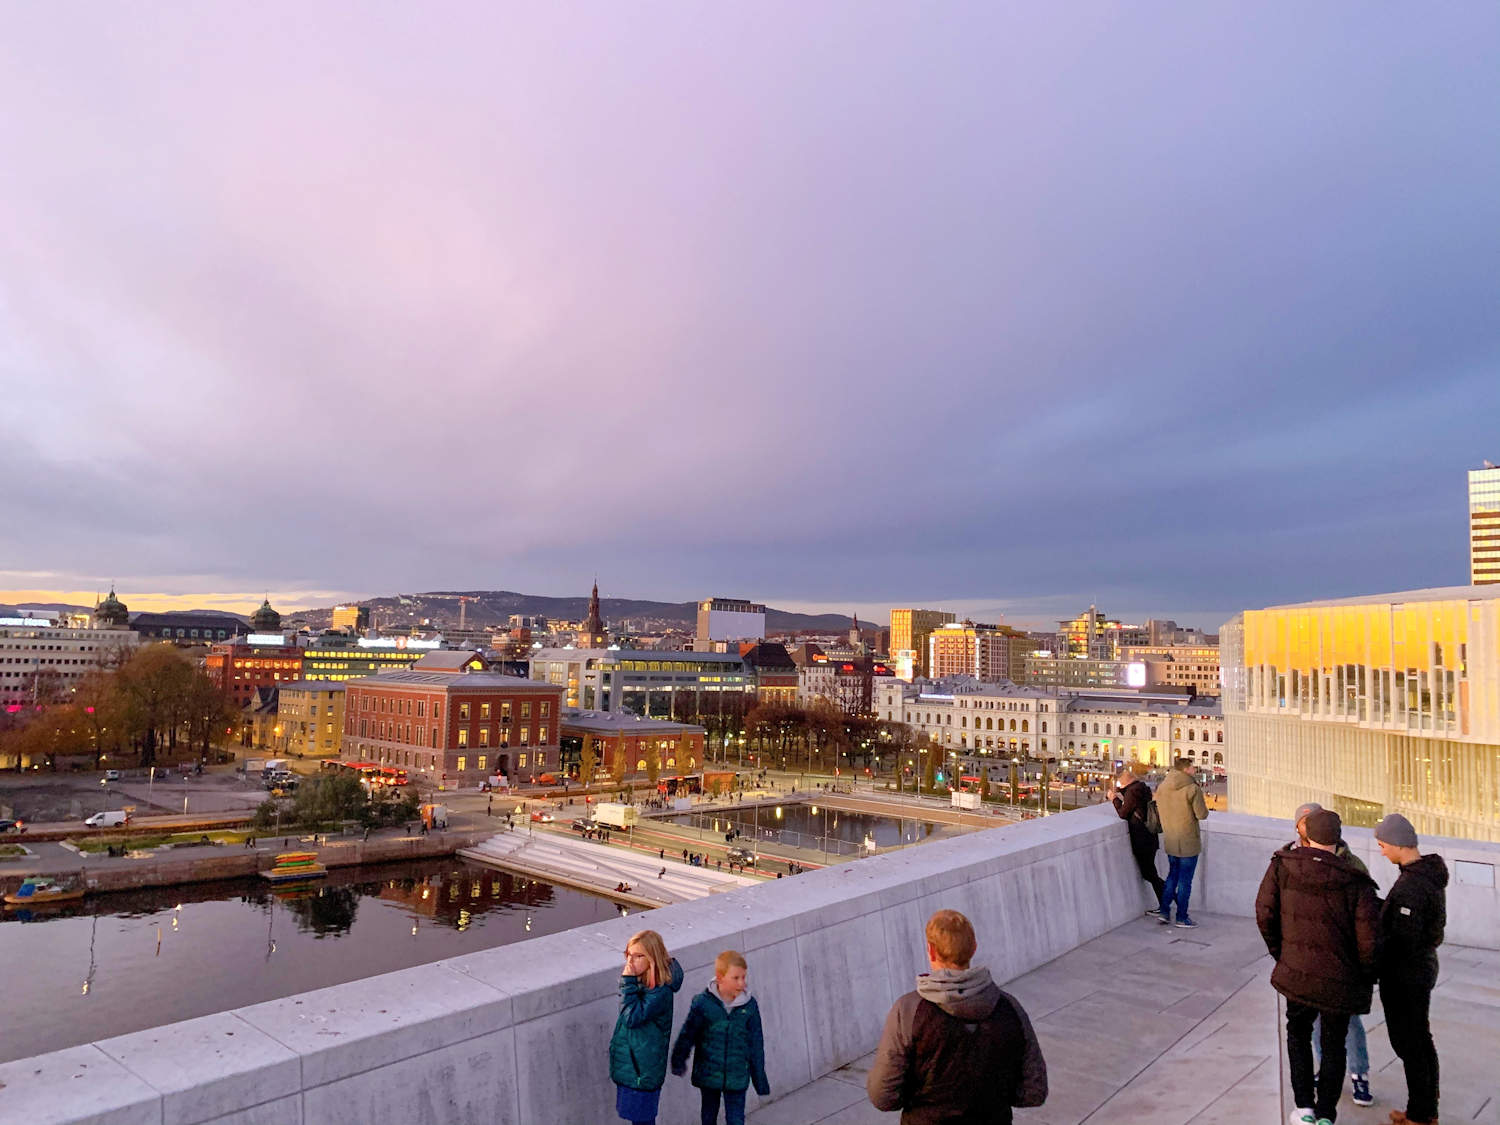 View from Opera house in Oslo